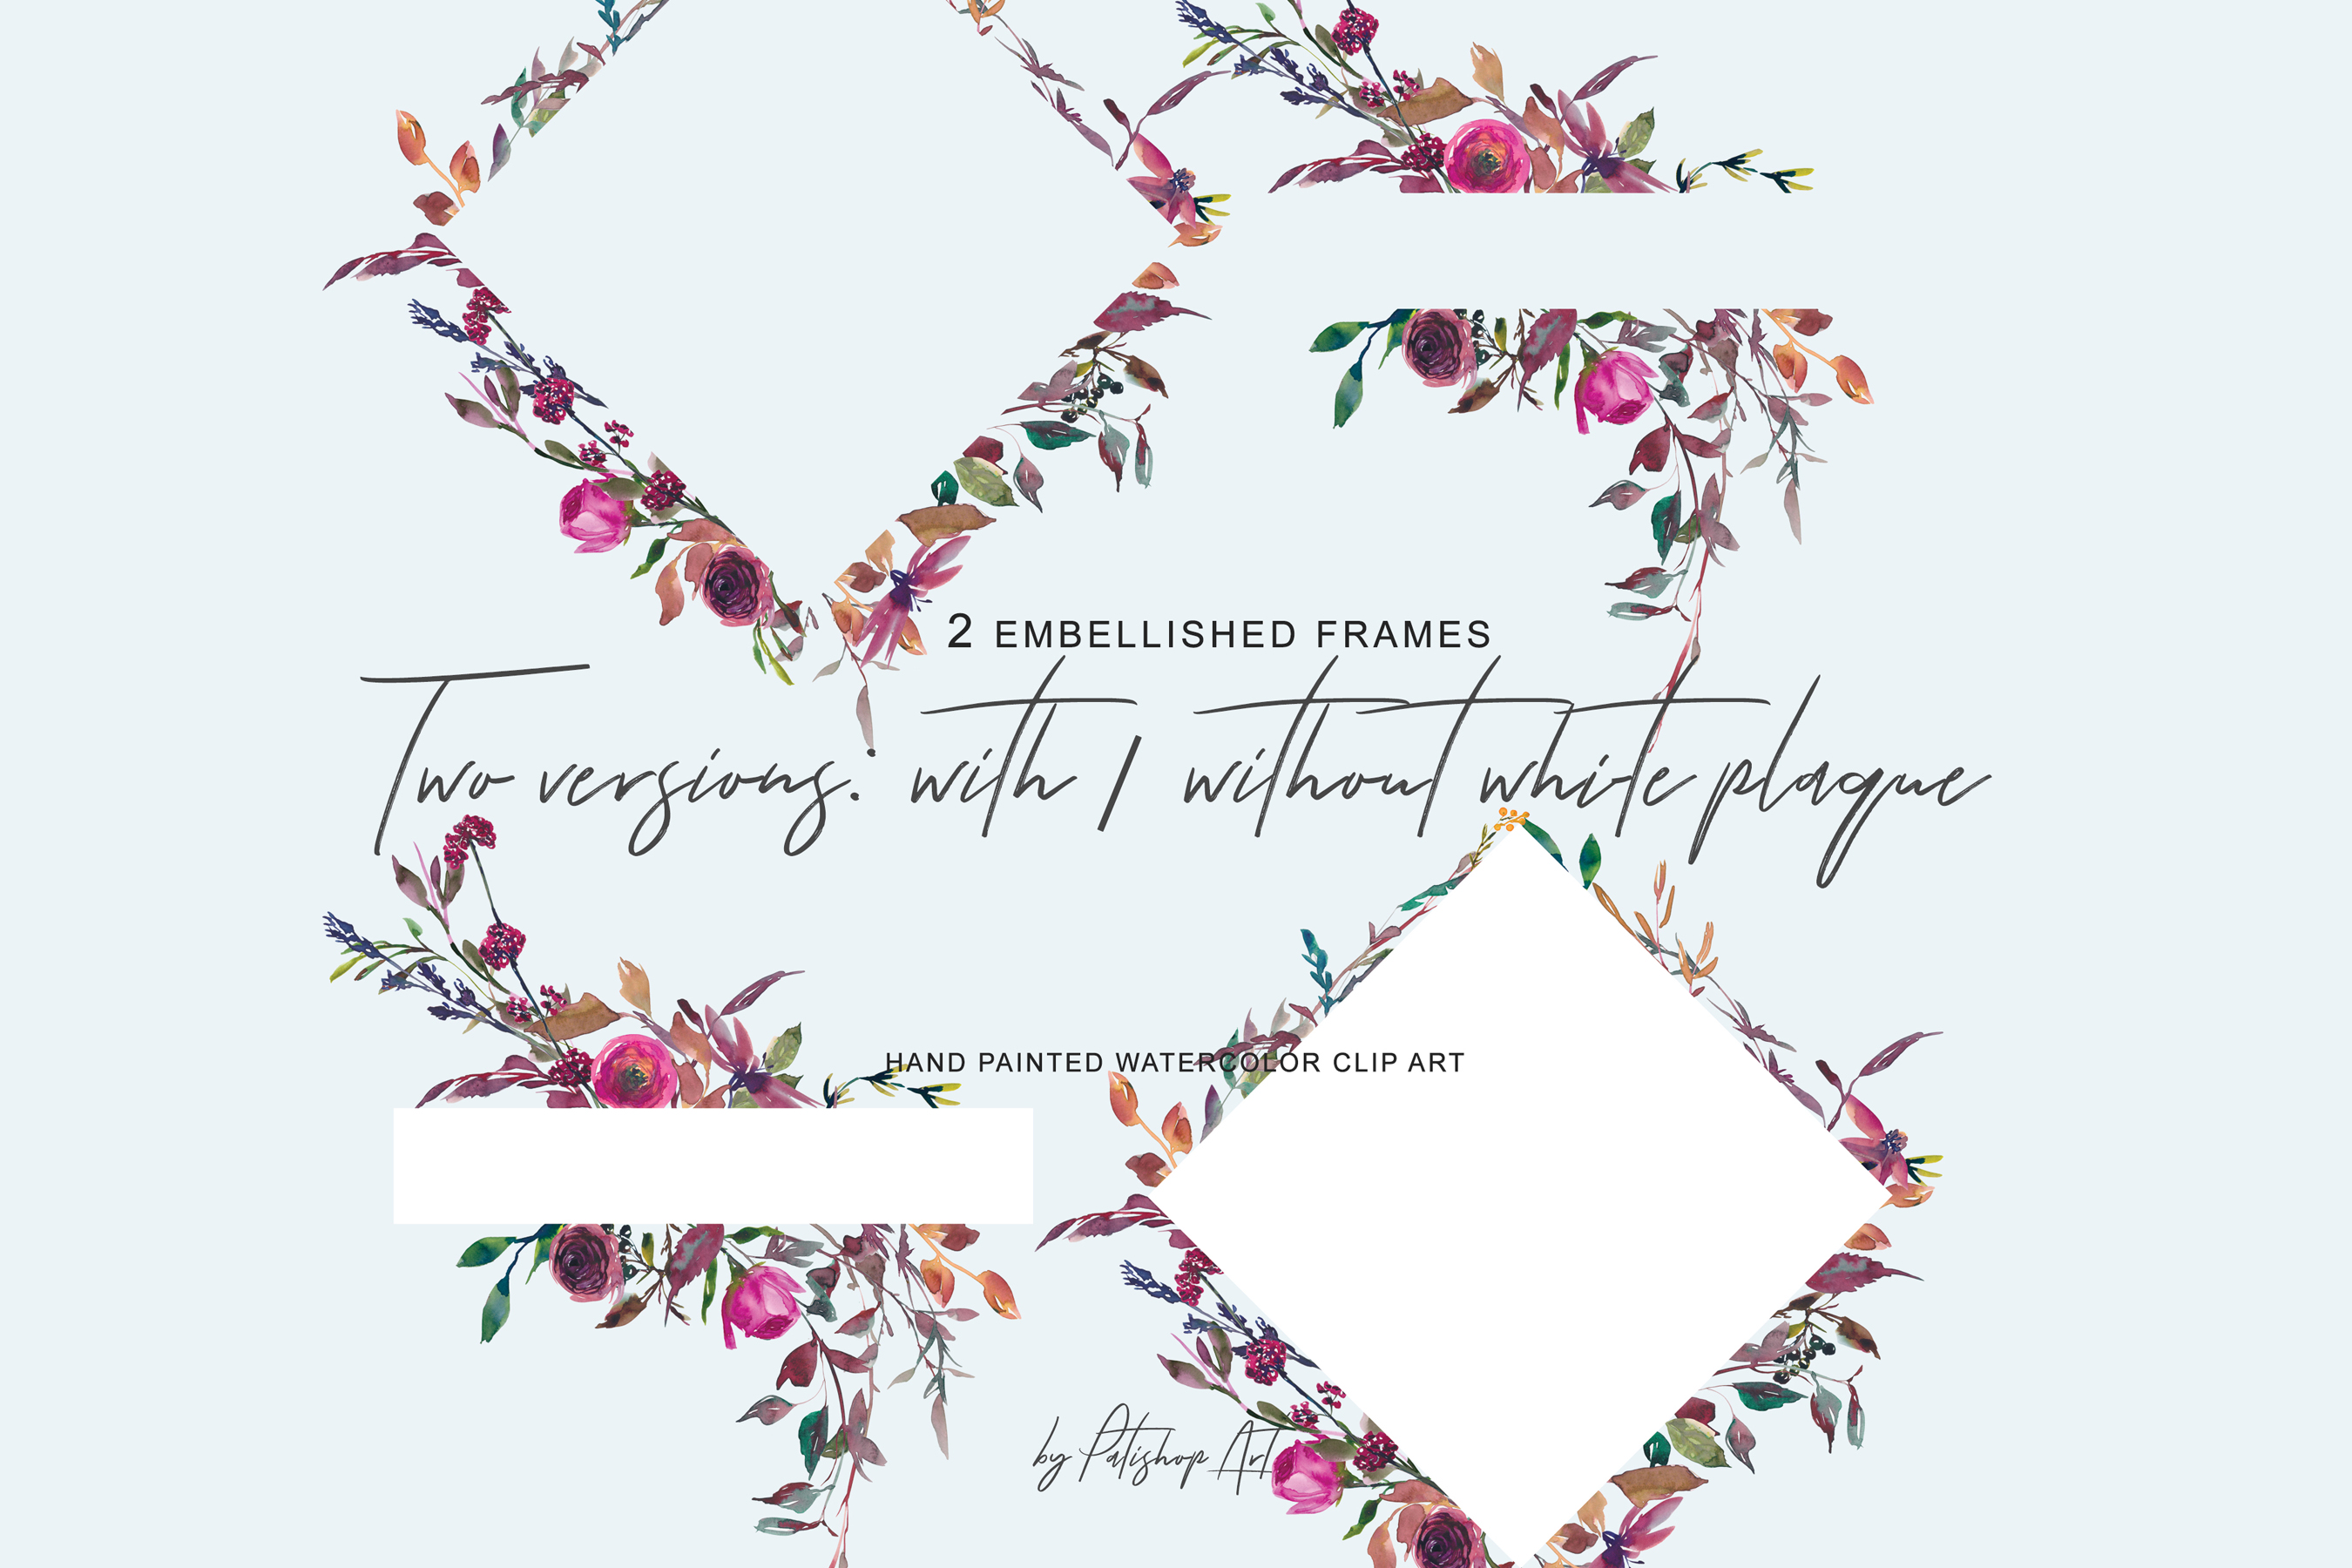 Watercolor Fall Twigs Herbs Flowers Arrangements Clipart example image 7